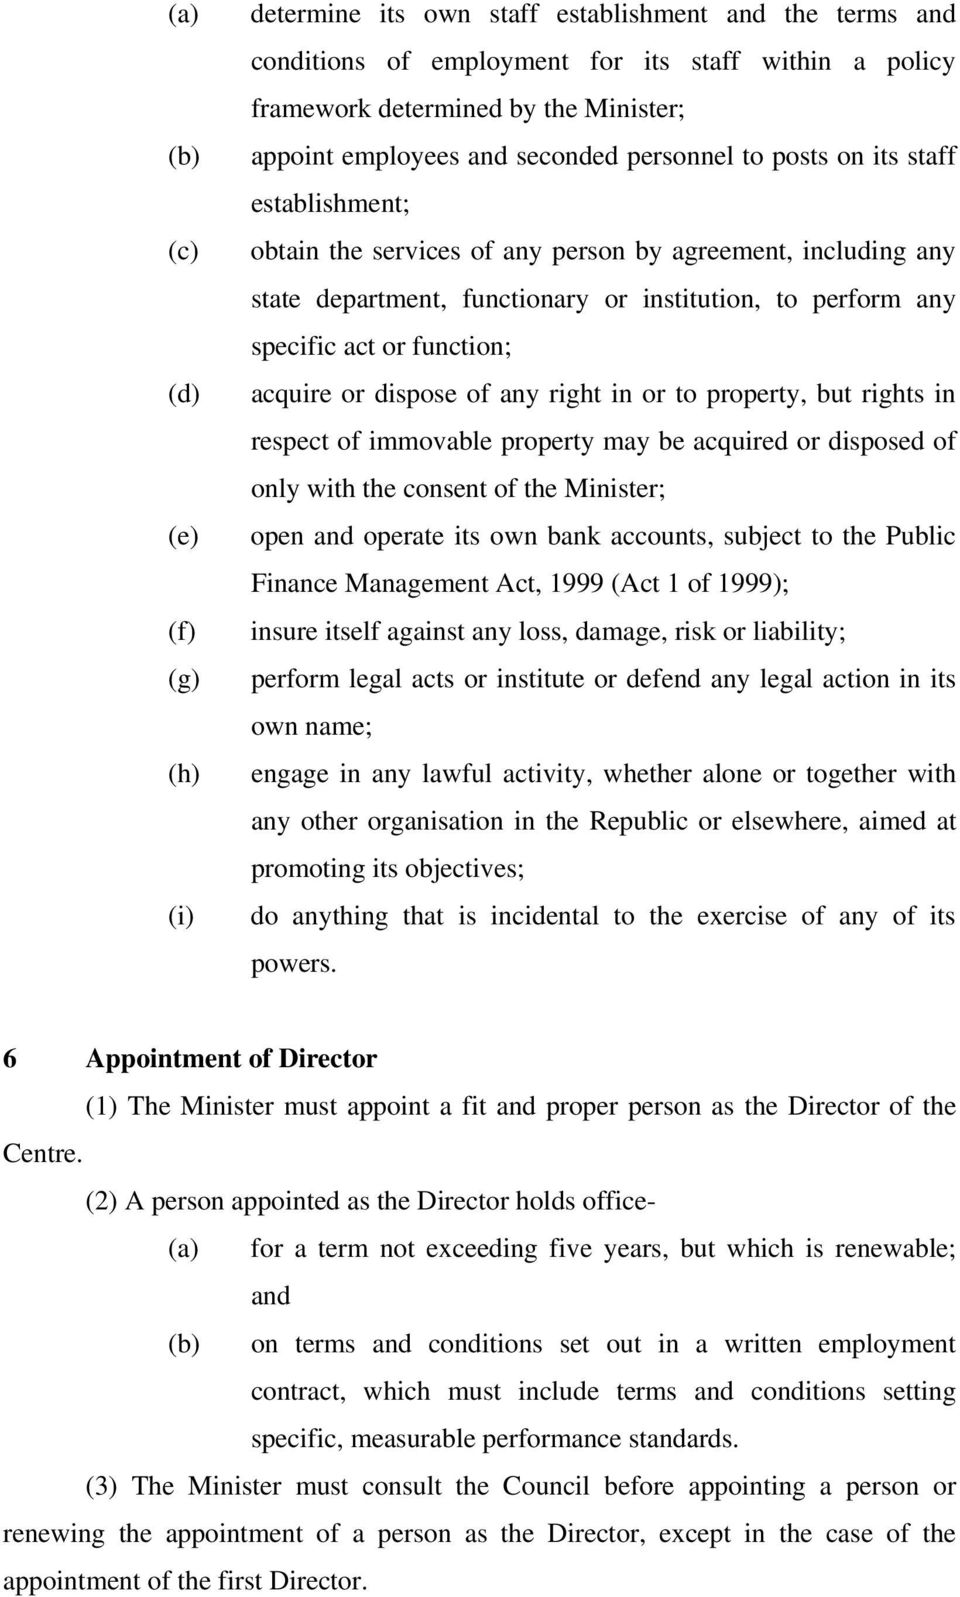 specific act or function; acquire or dispose of any right in or to property, but rights in respect of immovable property may be acquired or disposed of only with the consent of the Minister; open and